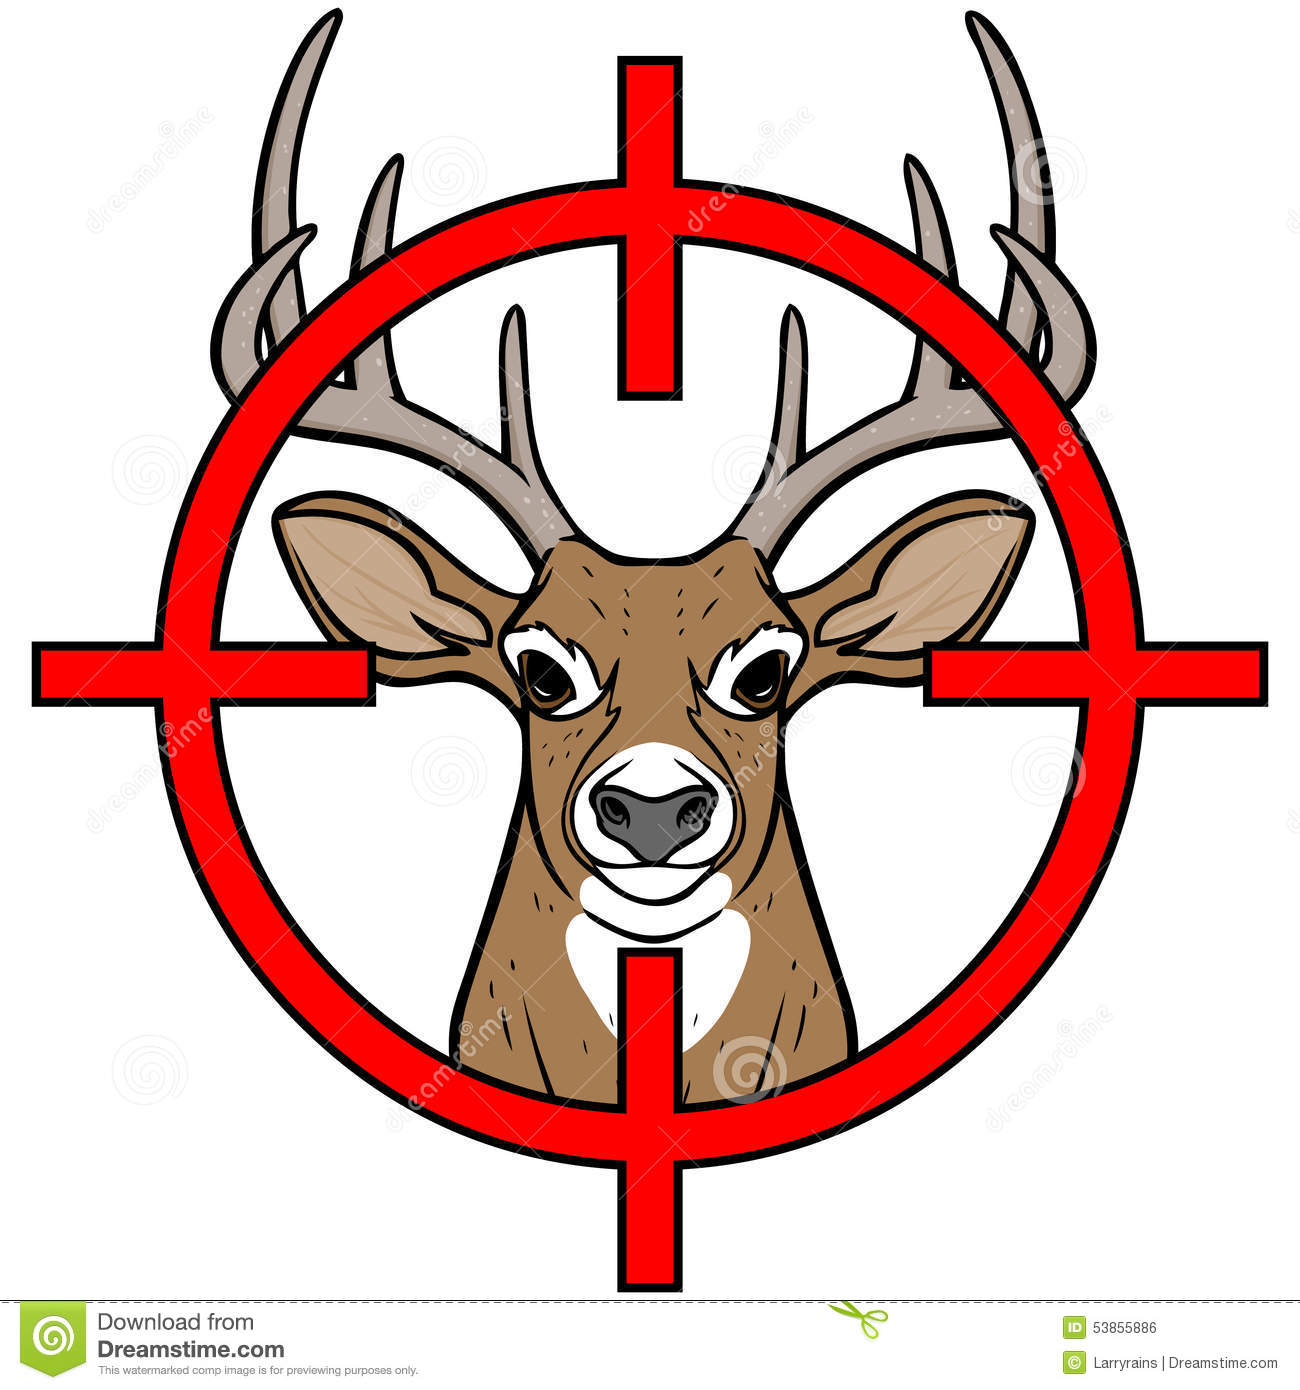 Hunting deer clipart picture free library 53+ Deer Hunting Clipart | ClipartLook picture free library